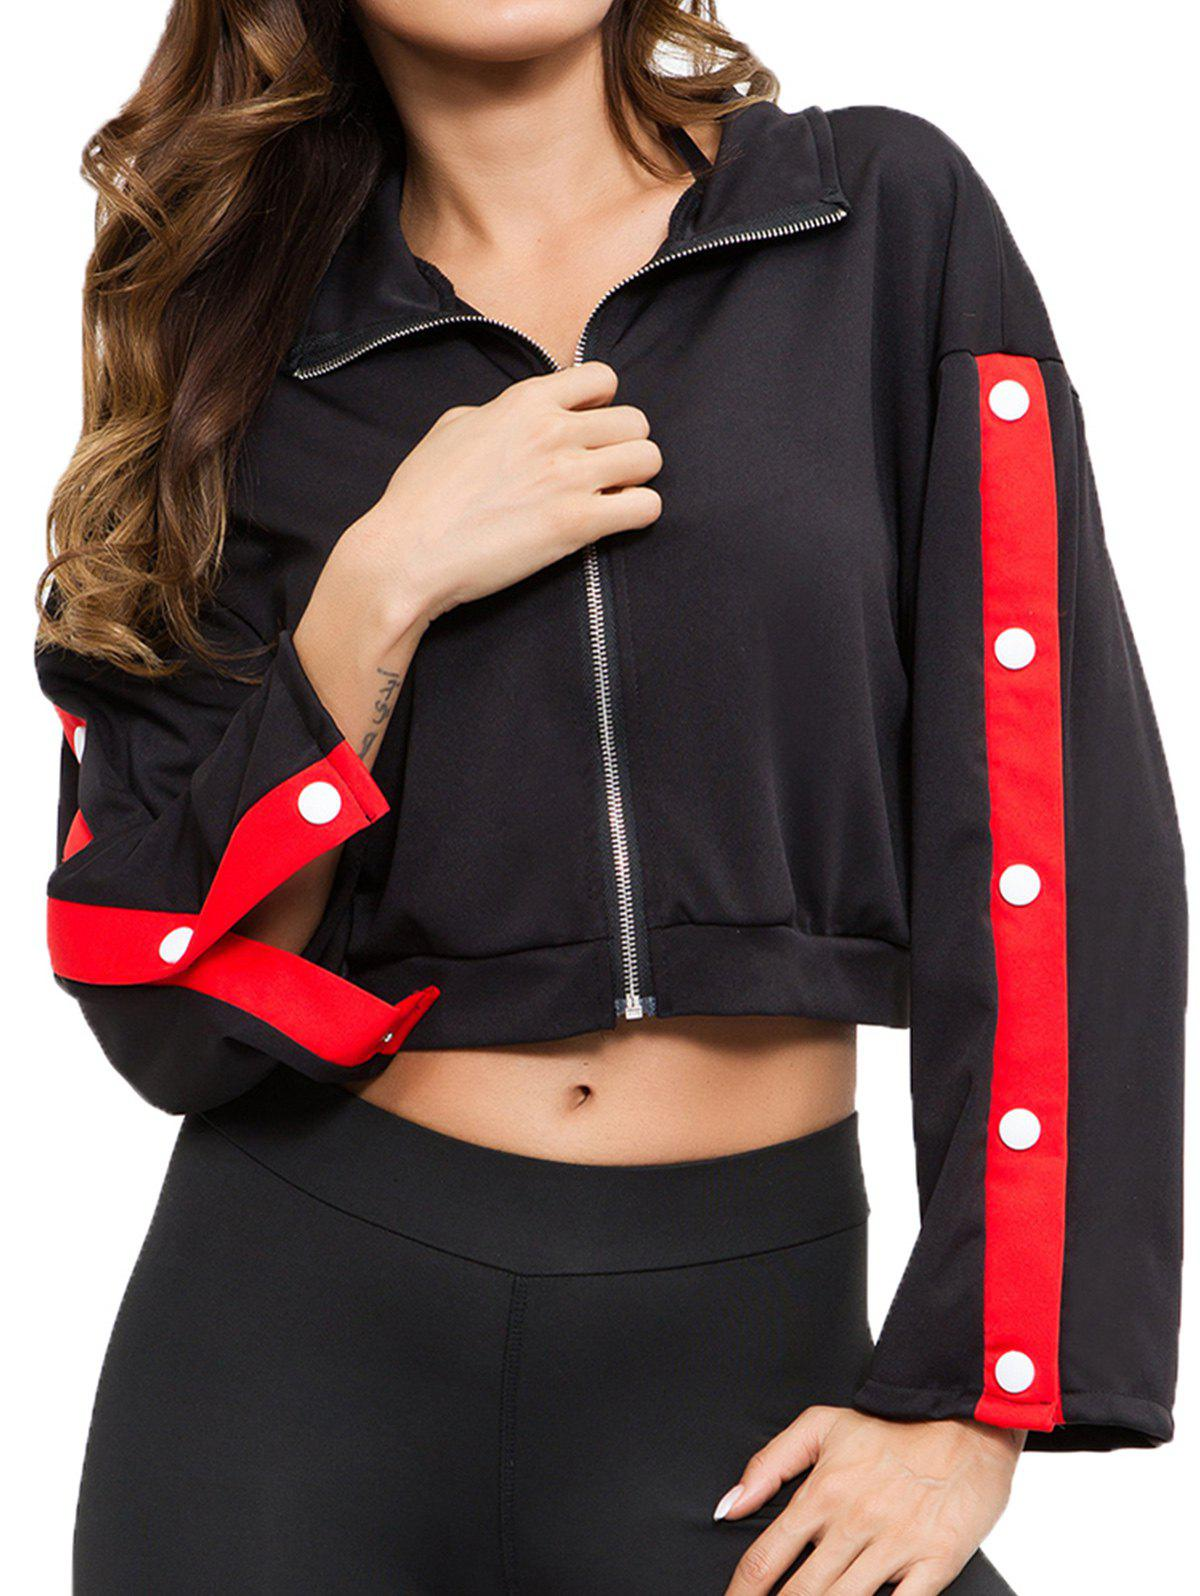 Fashion Sexy Navel Button Colorblock Zipper Jacket